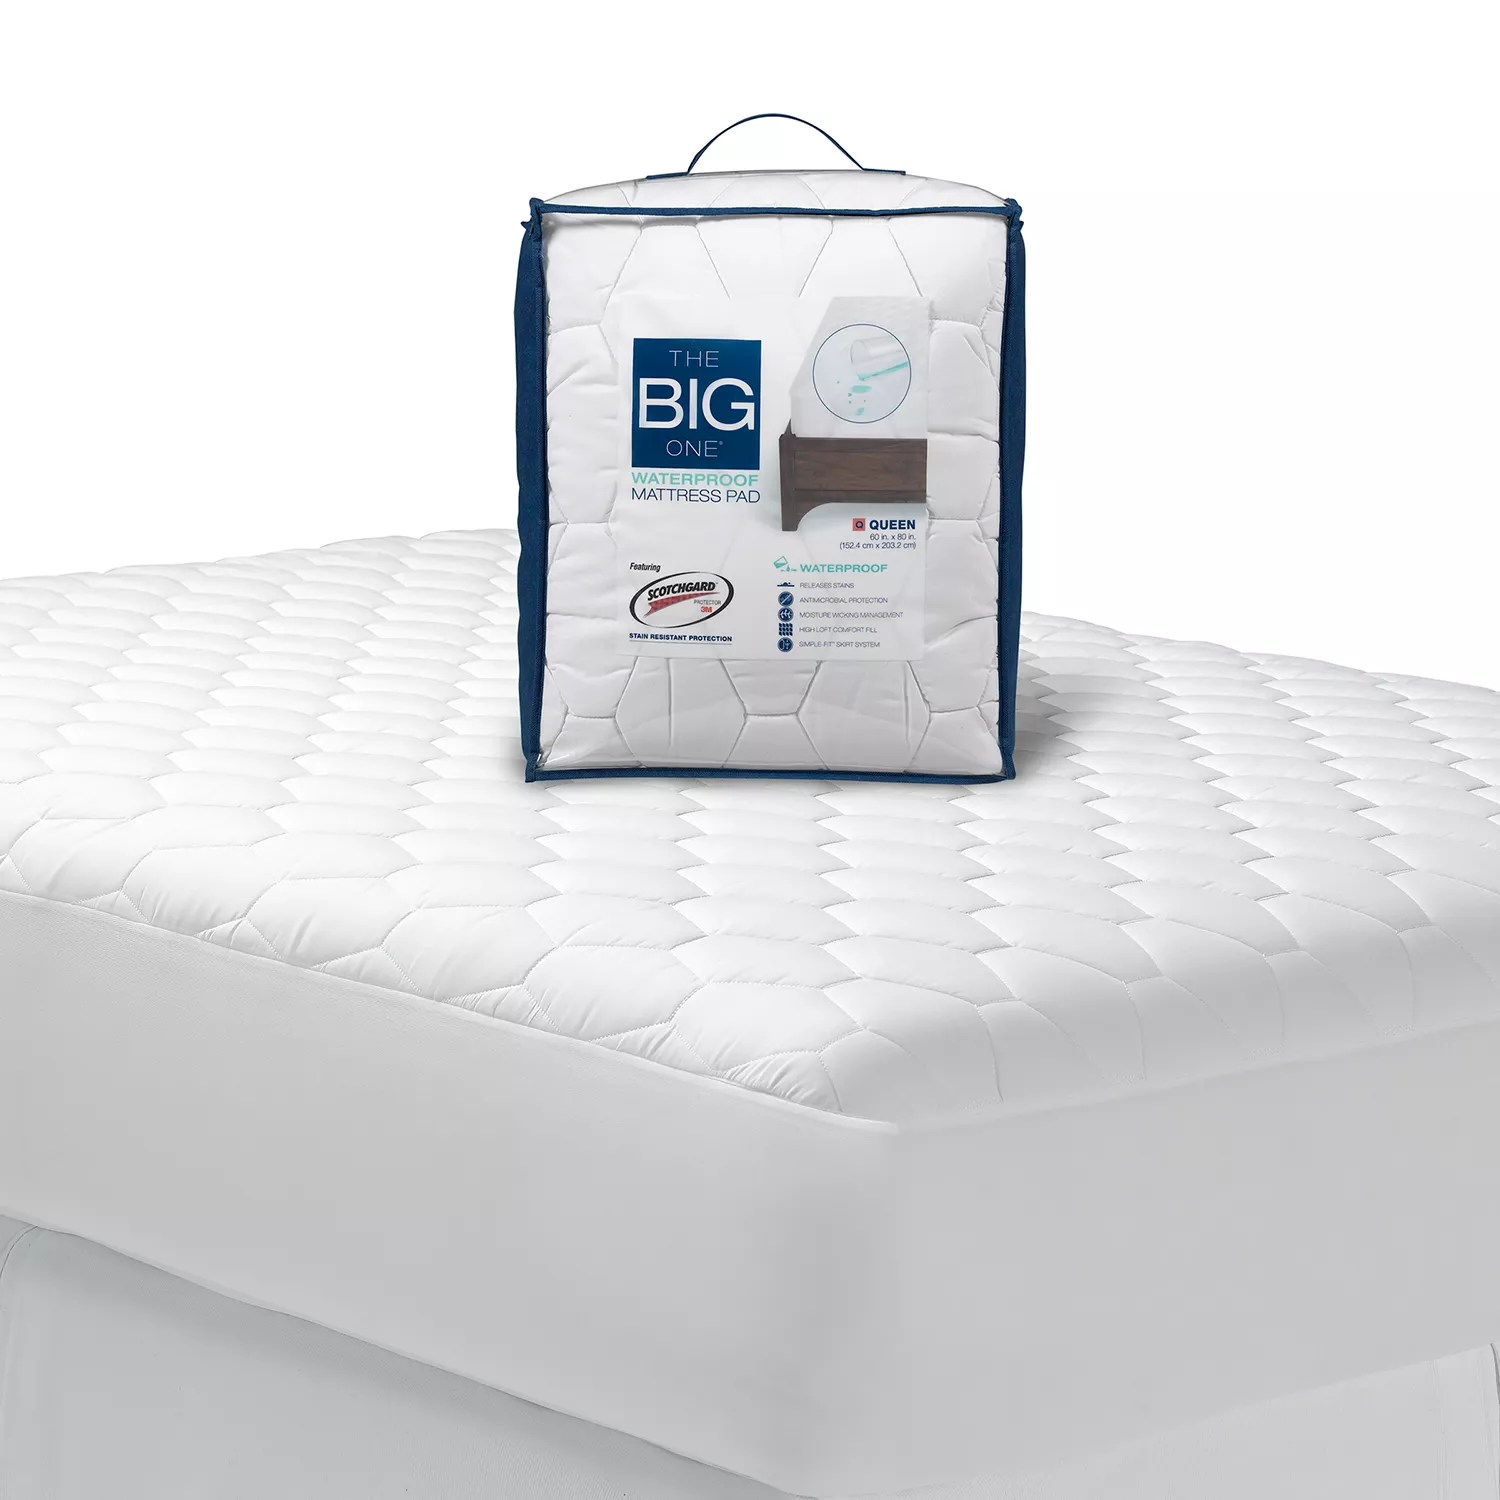 Super King Size Waterproof Mattress Protector The Big One Waterproof Mattress Pad